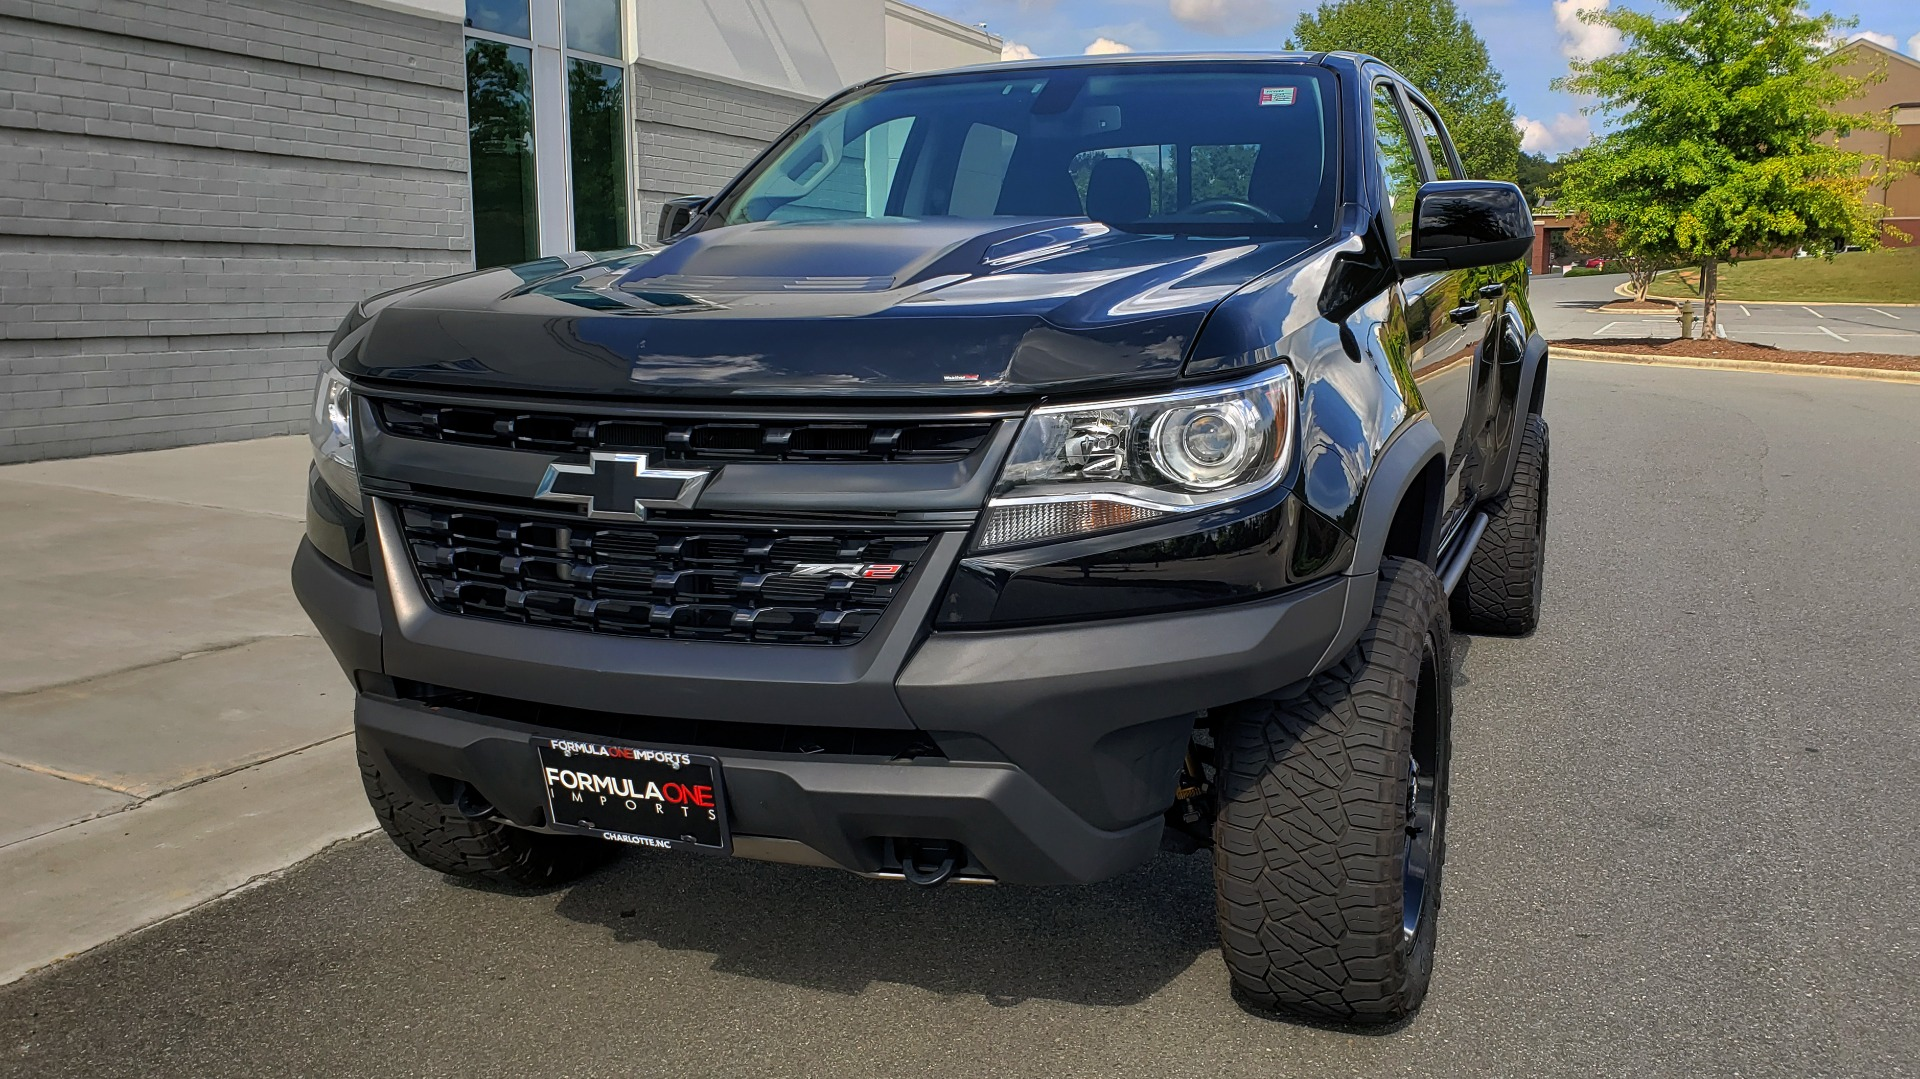 Used 2019 Chevrolet COLORADO 4WD ZR2 / 3.6L V6 / 8-SPD AUTO / CREWCAB / LEATHER / BOSE / REARVIEW for sale $41,995 at Formula Imports in Charlotte NC 28227 2